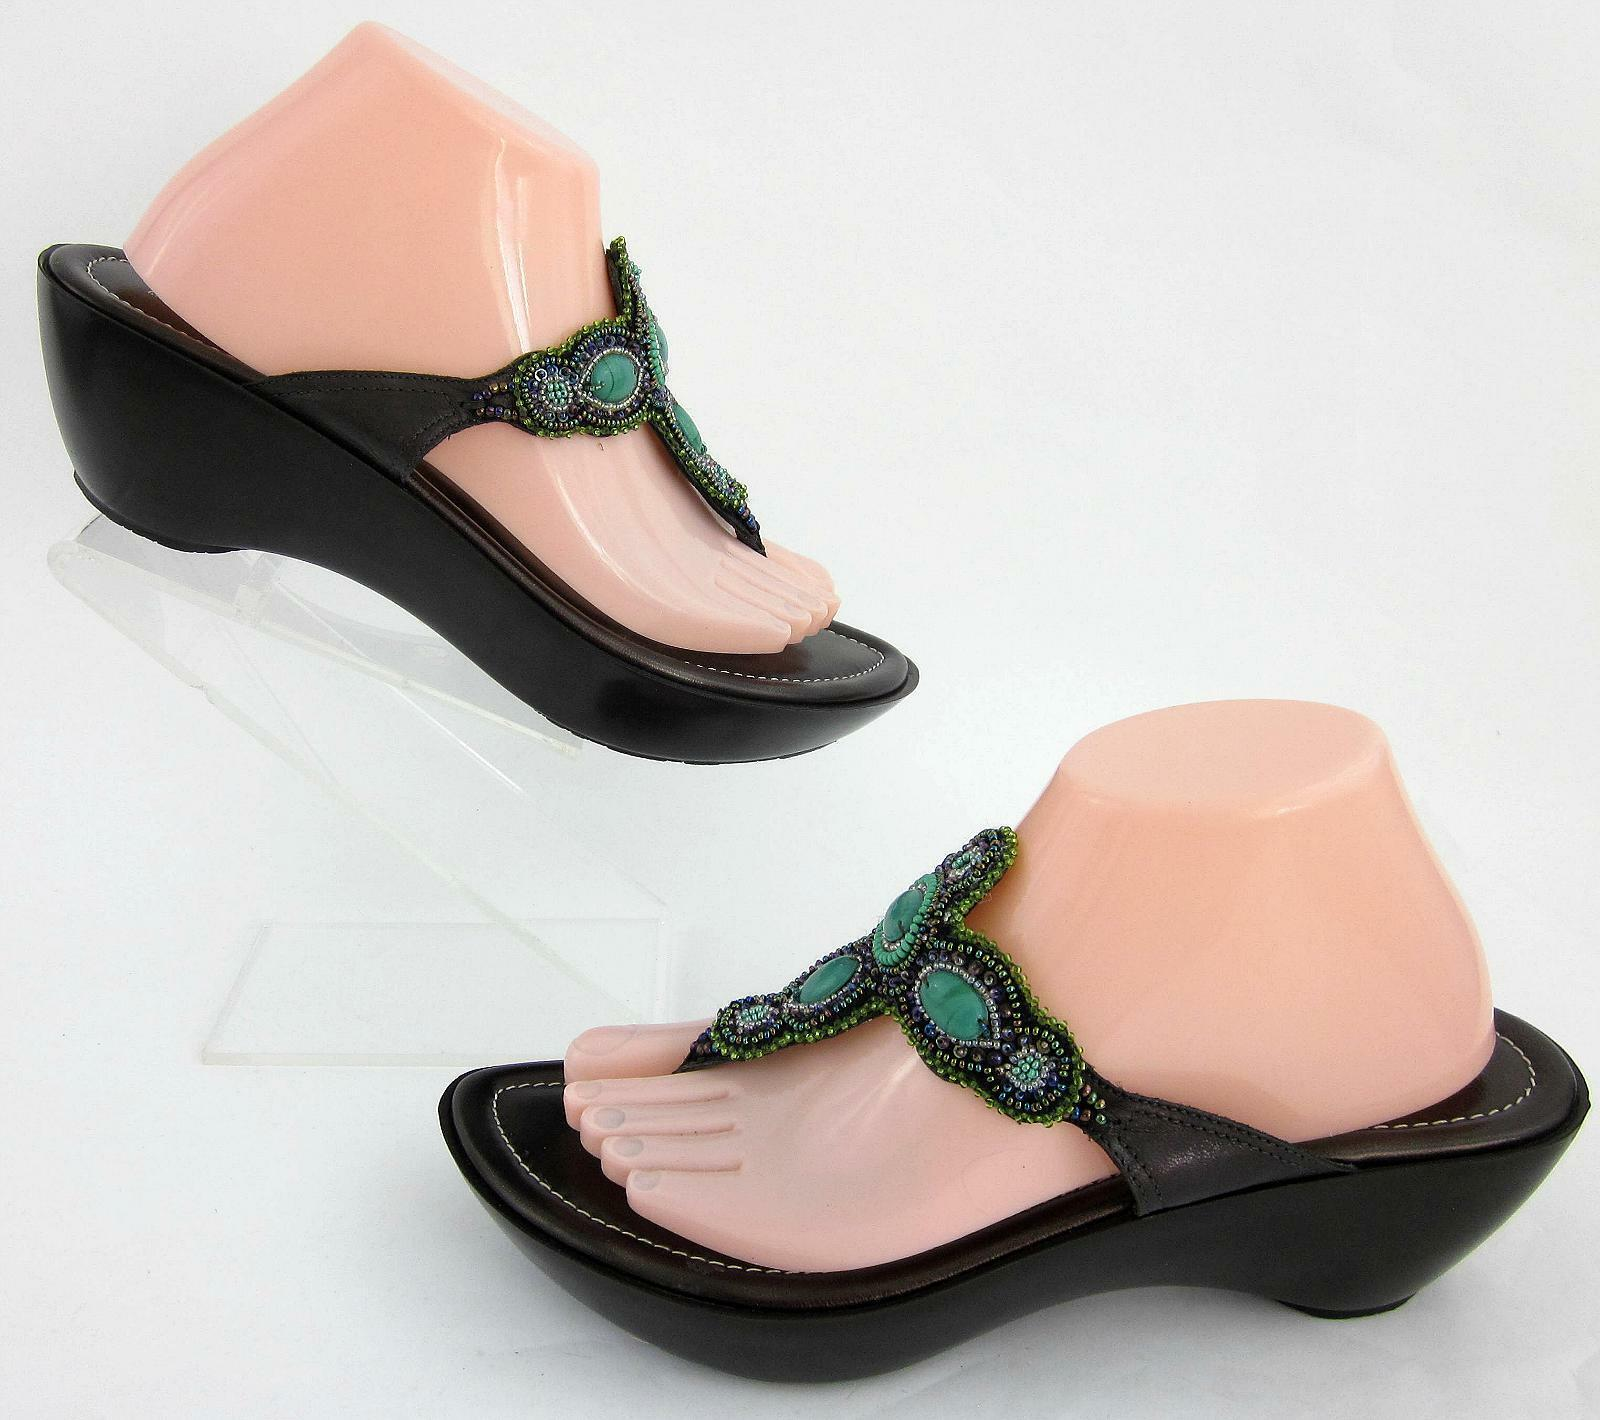 Donald  J Pliner'CeCe 'Thong Wedge Sandals Hand Beaded Turquoise Marronee 10M  popolare